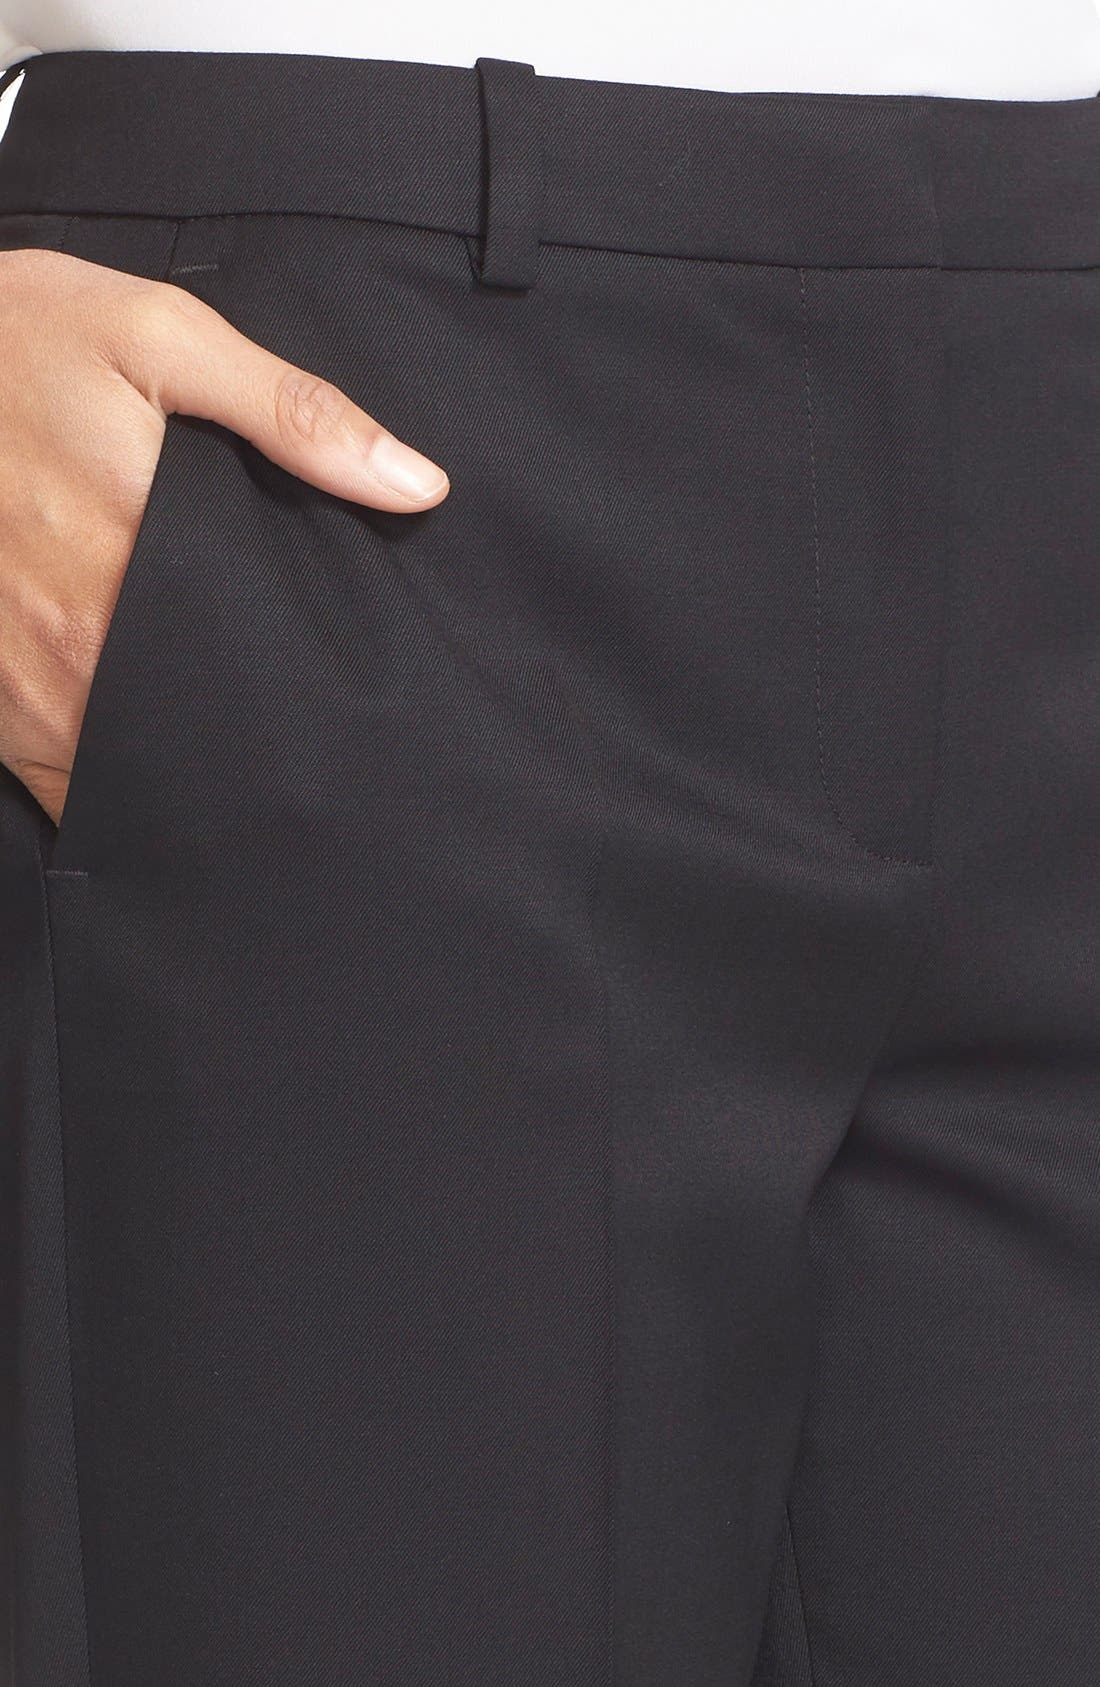 'Timeless' Stretch Wool Trousers,                             Alternate thumbnail 6, color,                             001